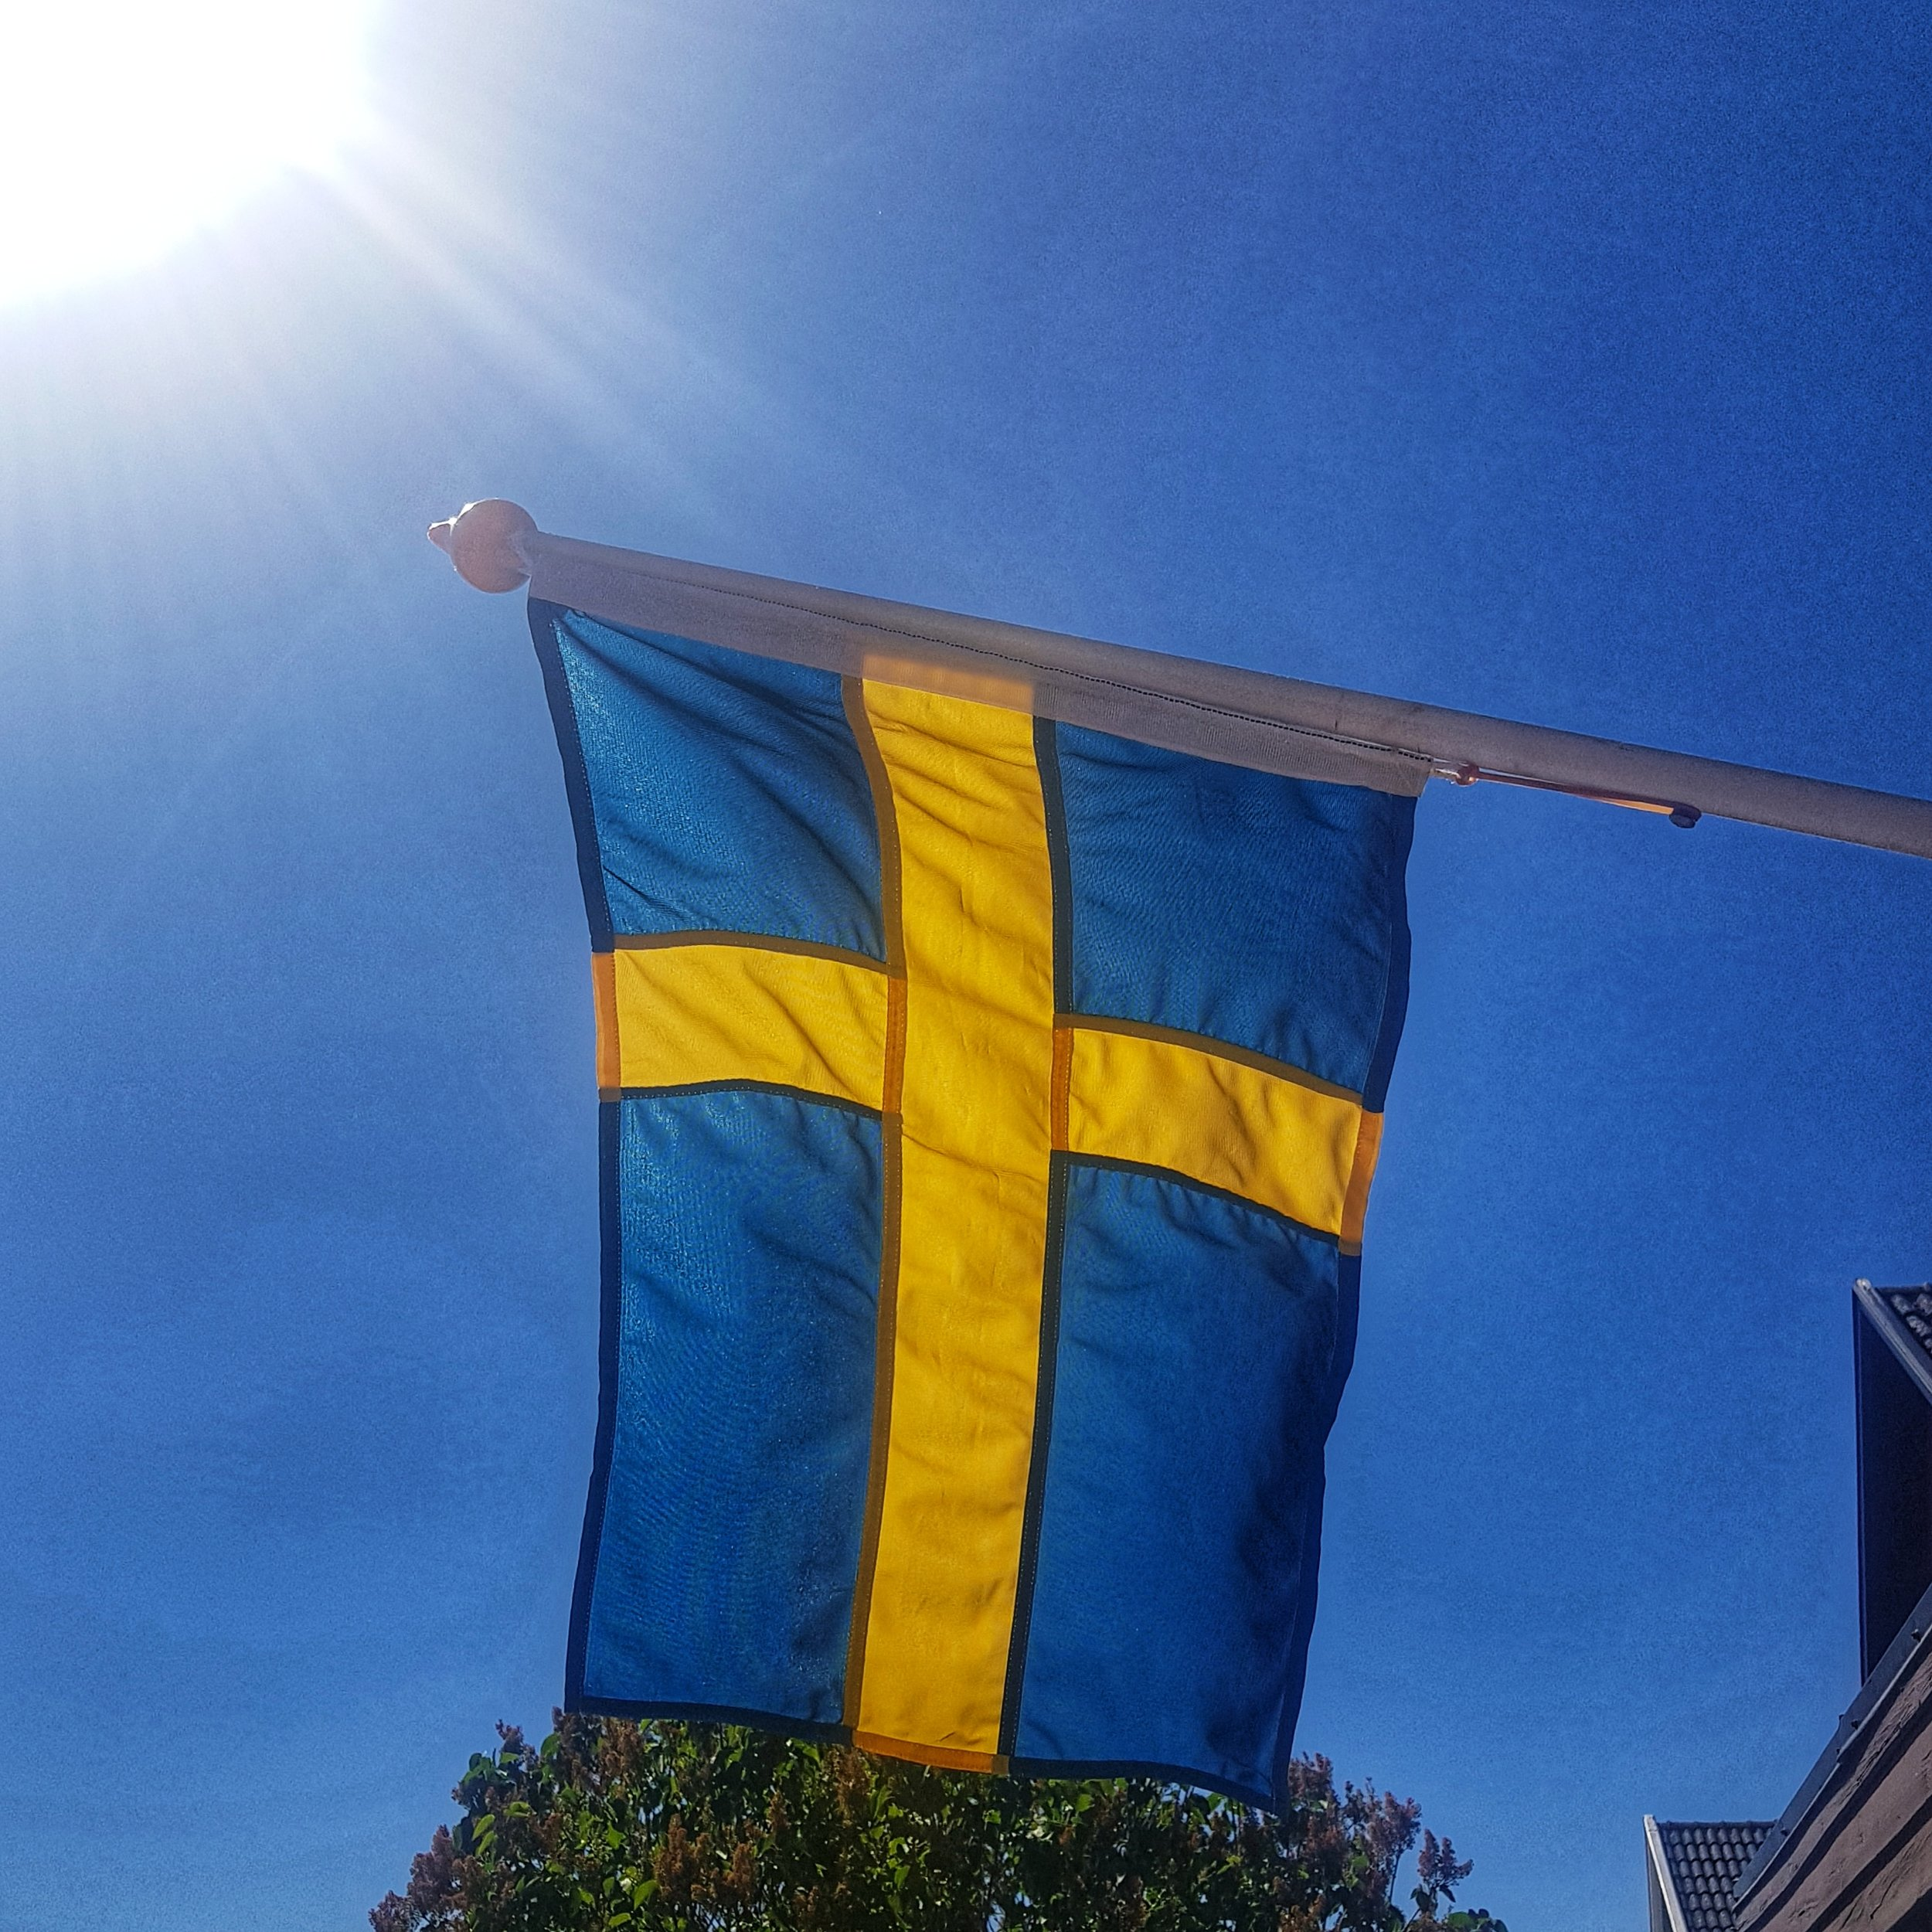 Day 157 - June 06: Sweden's Day